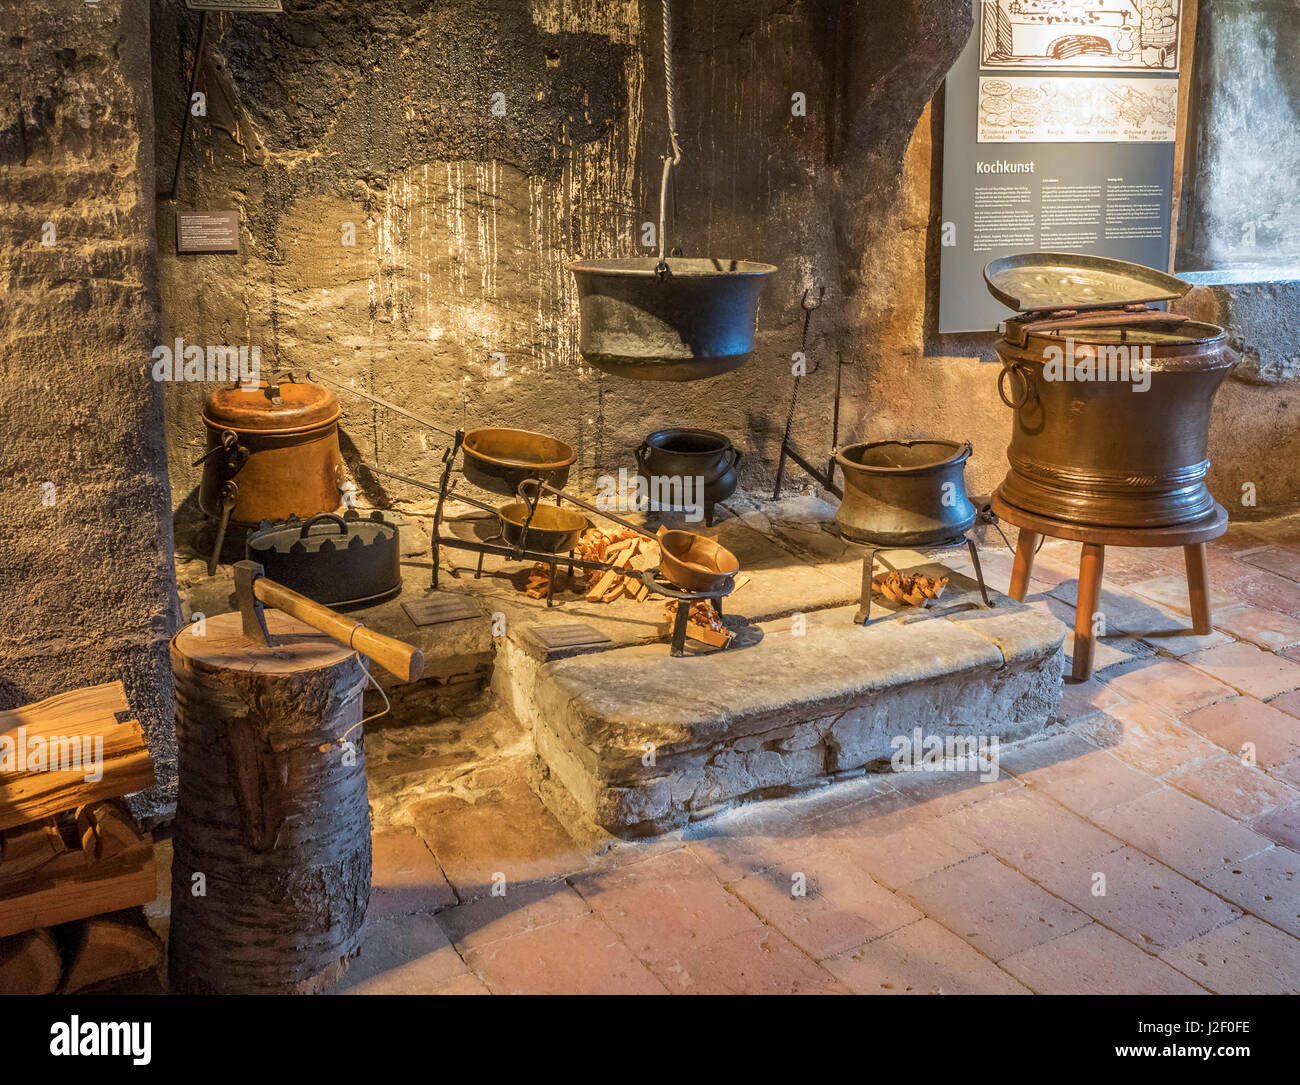 Switzerland, Bern Canton, Spiez, Spiez Castle, fireplace used for ...